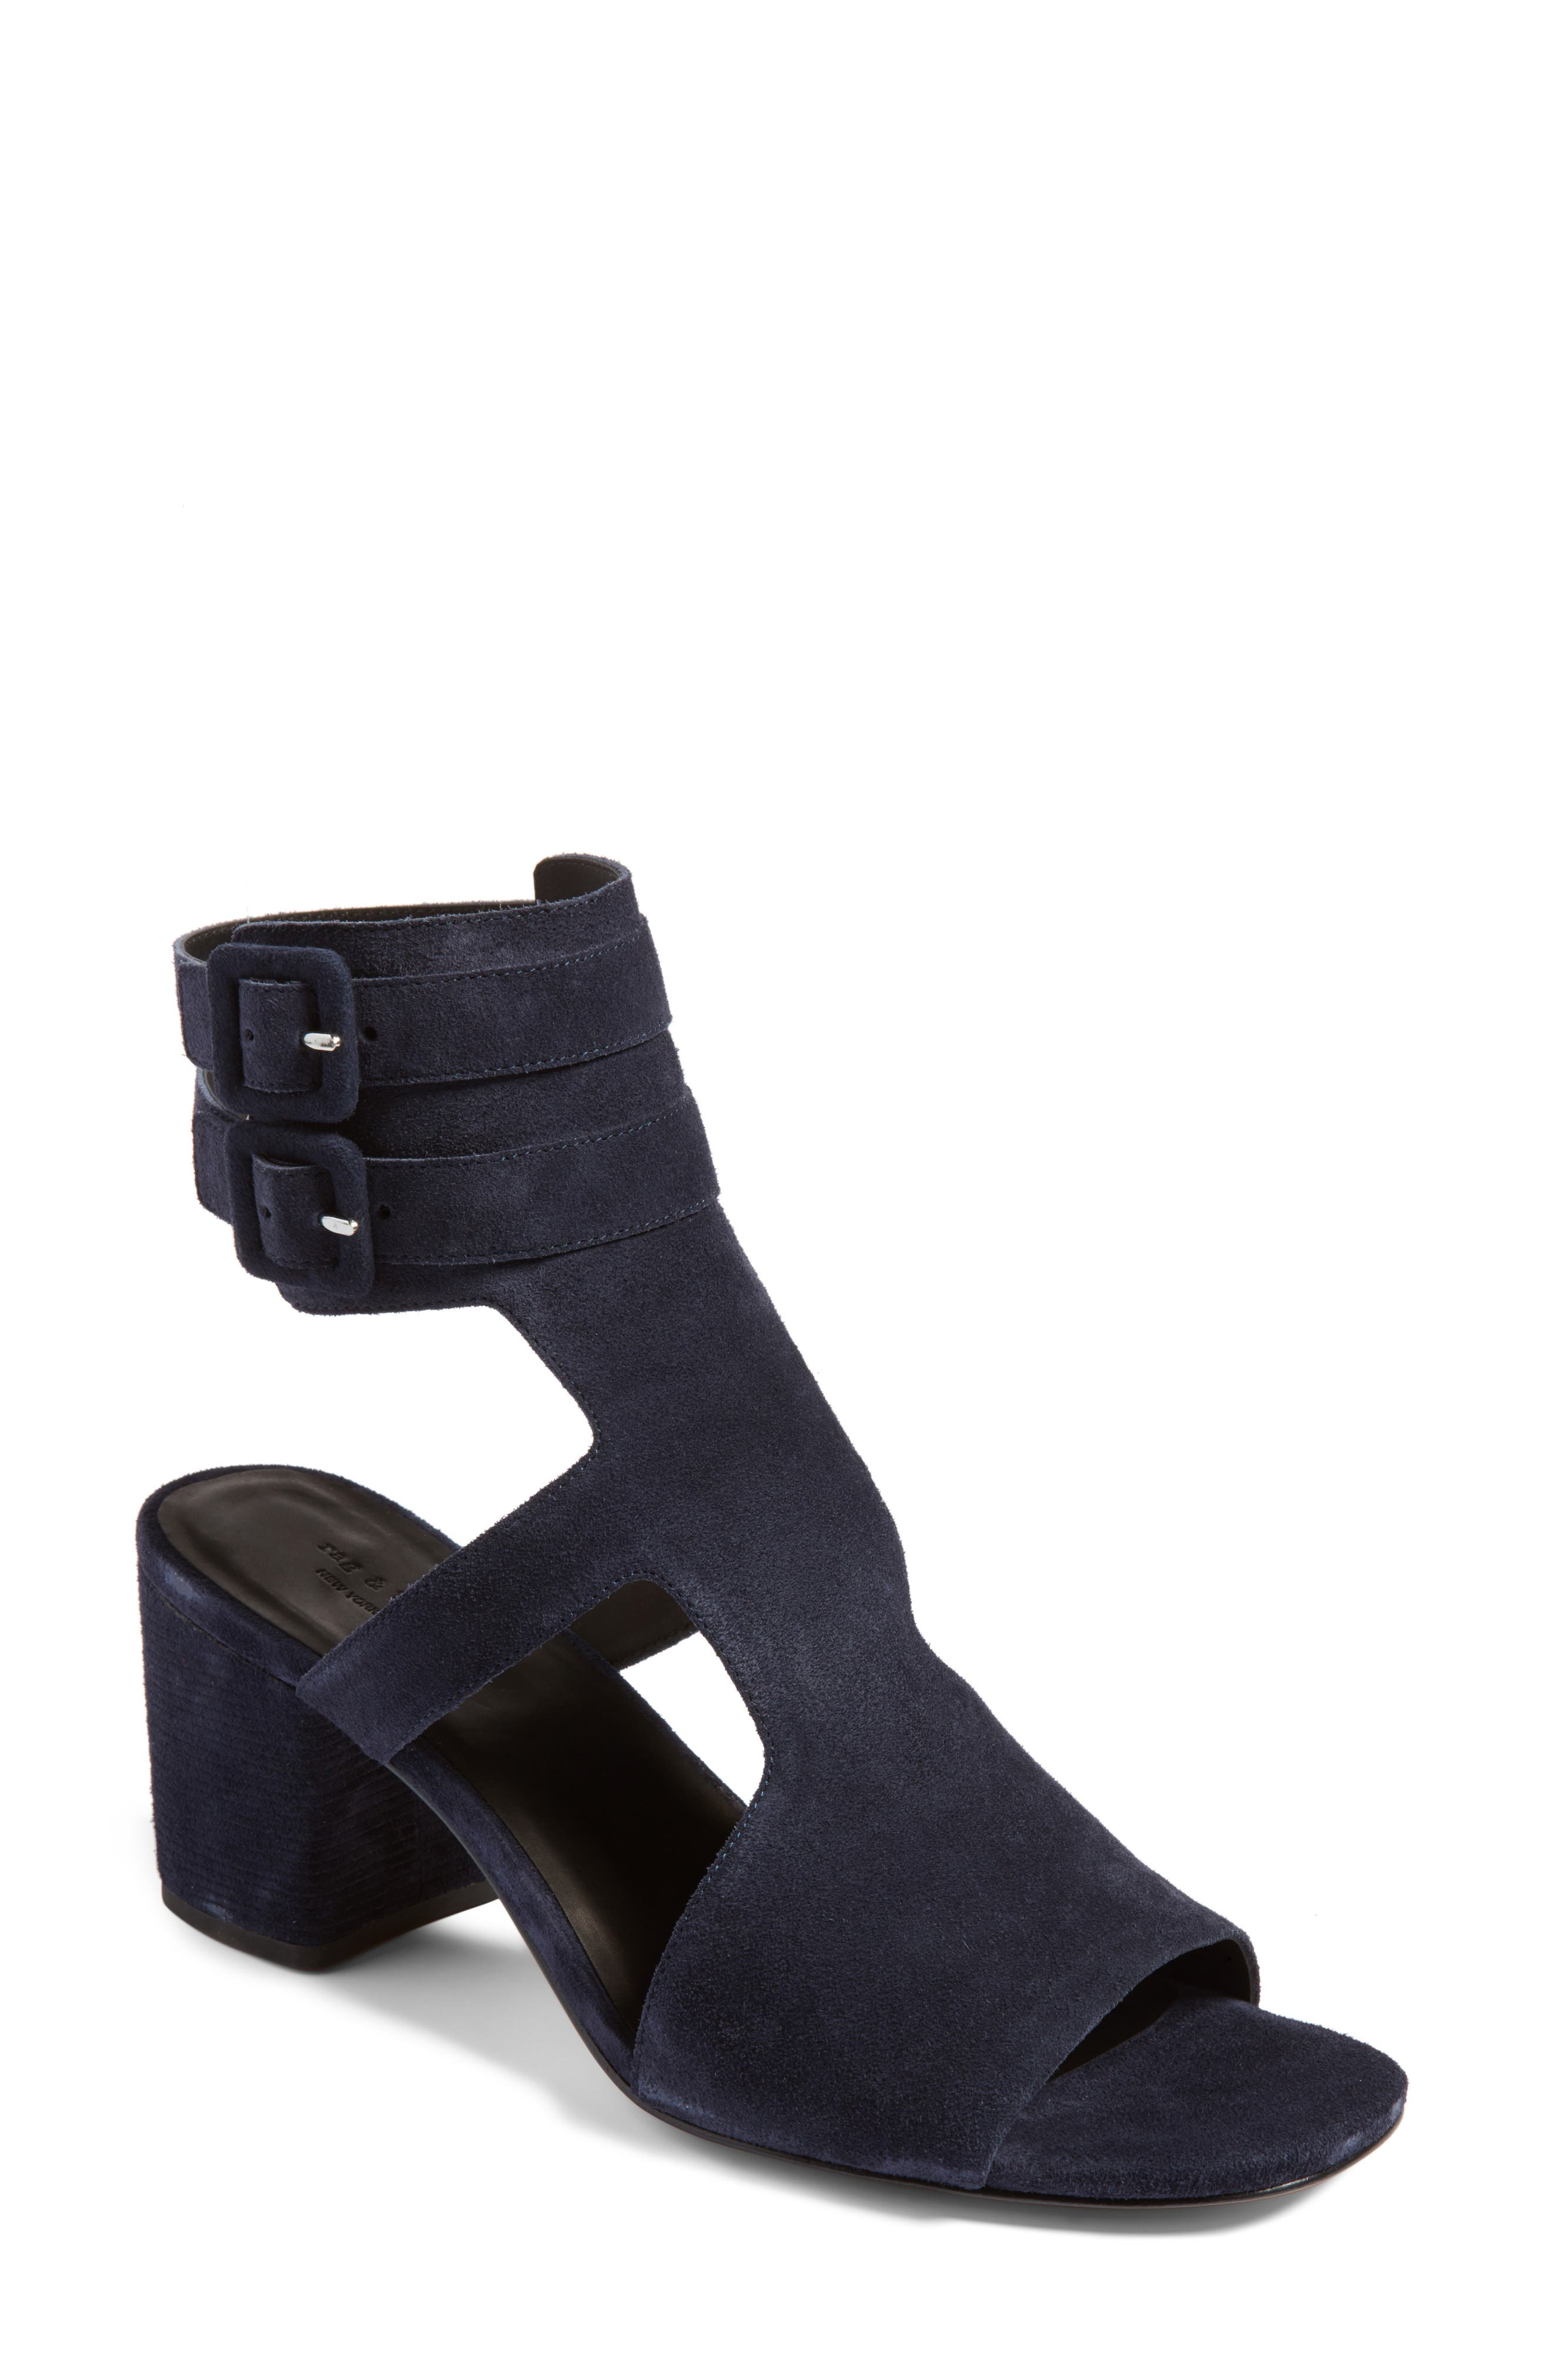 Madison Buckle Cuff Sandal,                             Main thumbnail 1, color,                             427